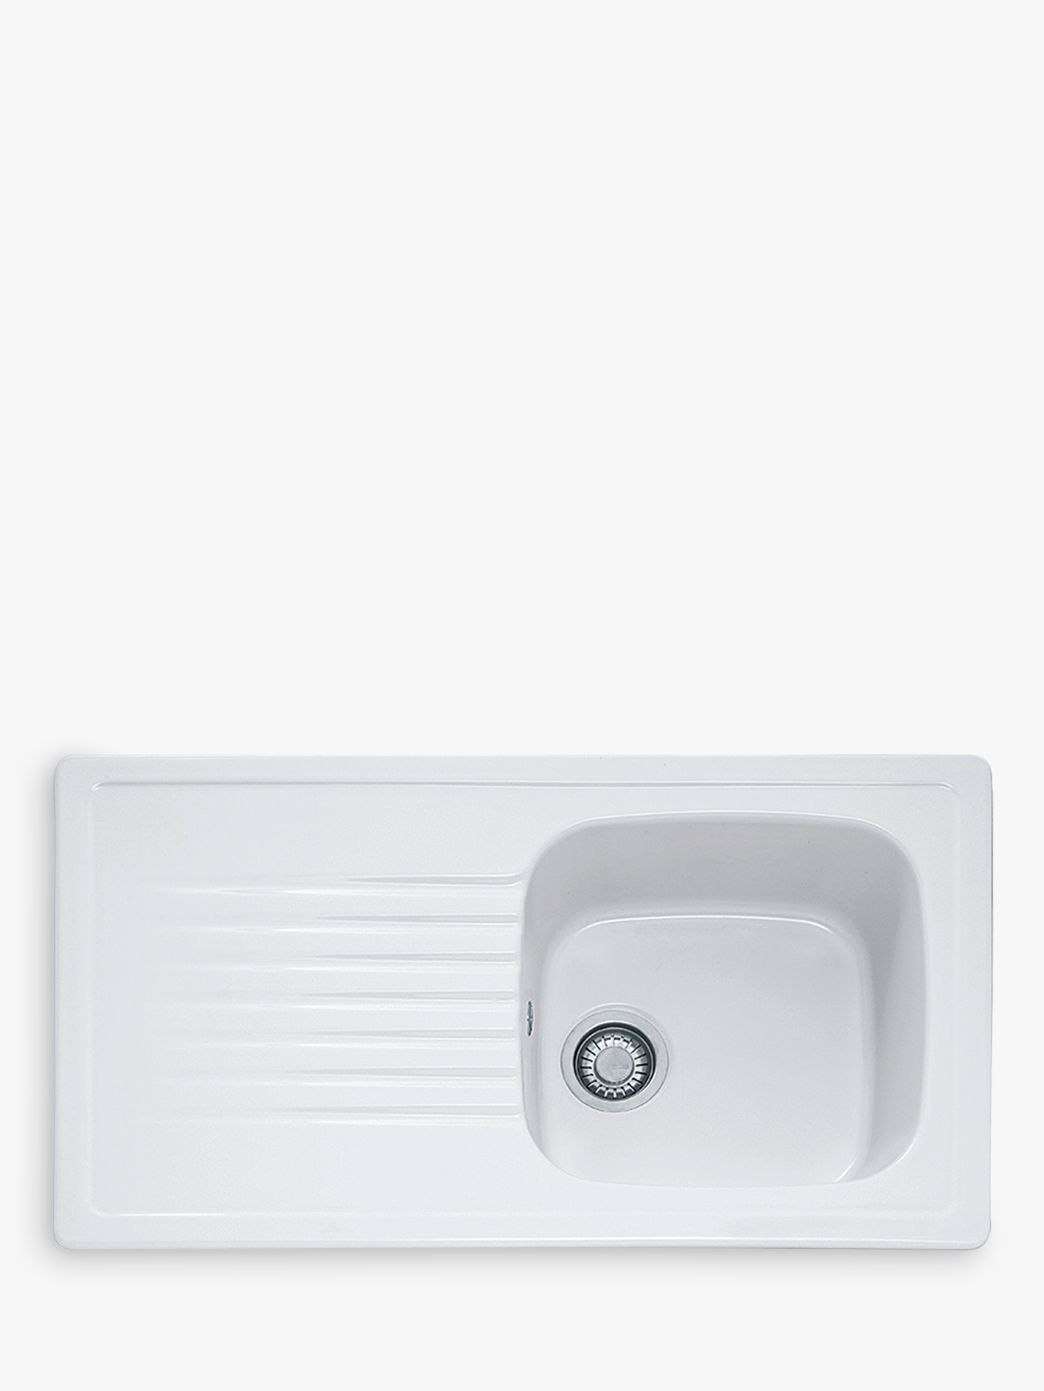 Villeroy & Boch Villeroy & Boch Elba ELK 611 Single Bowl Ceramic Inset Kitchen Sink, White